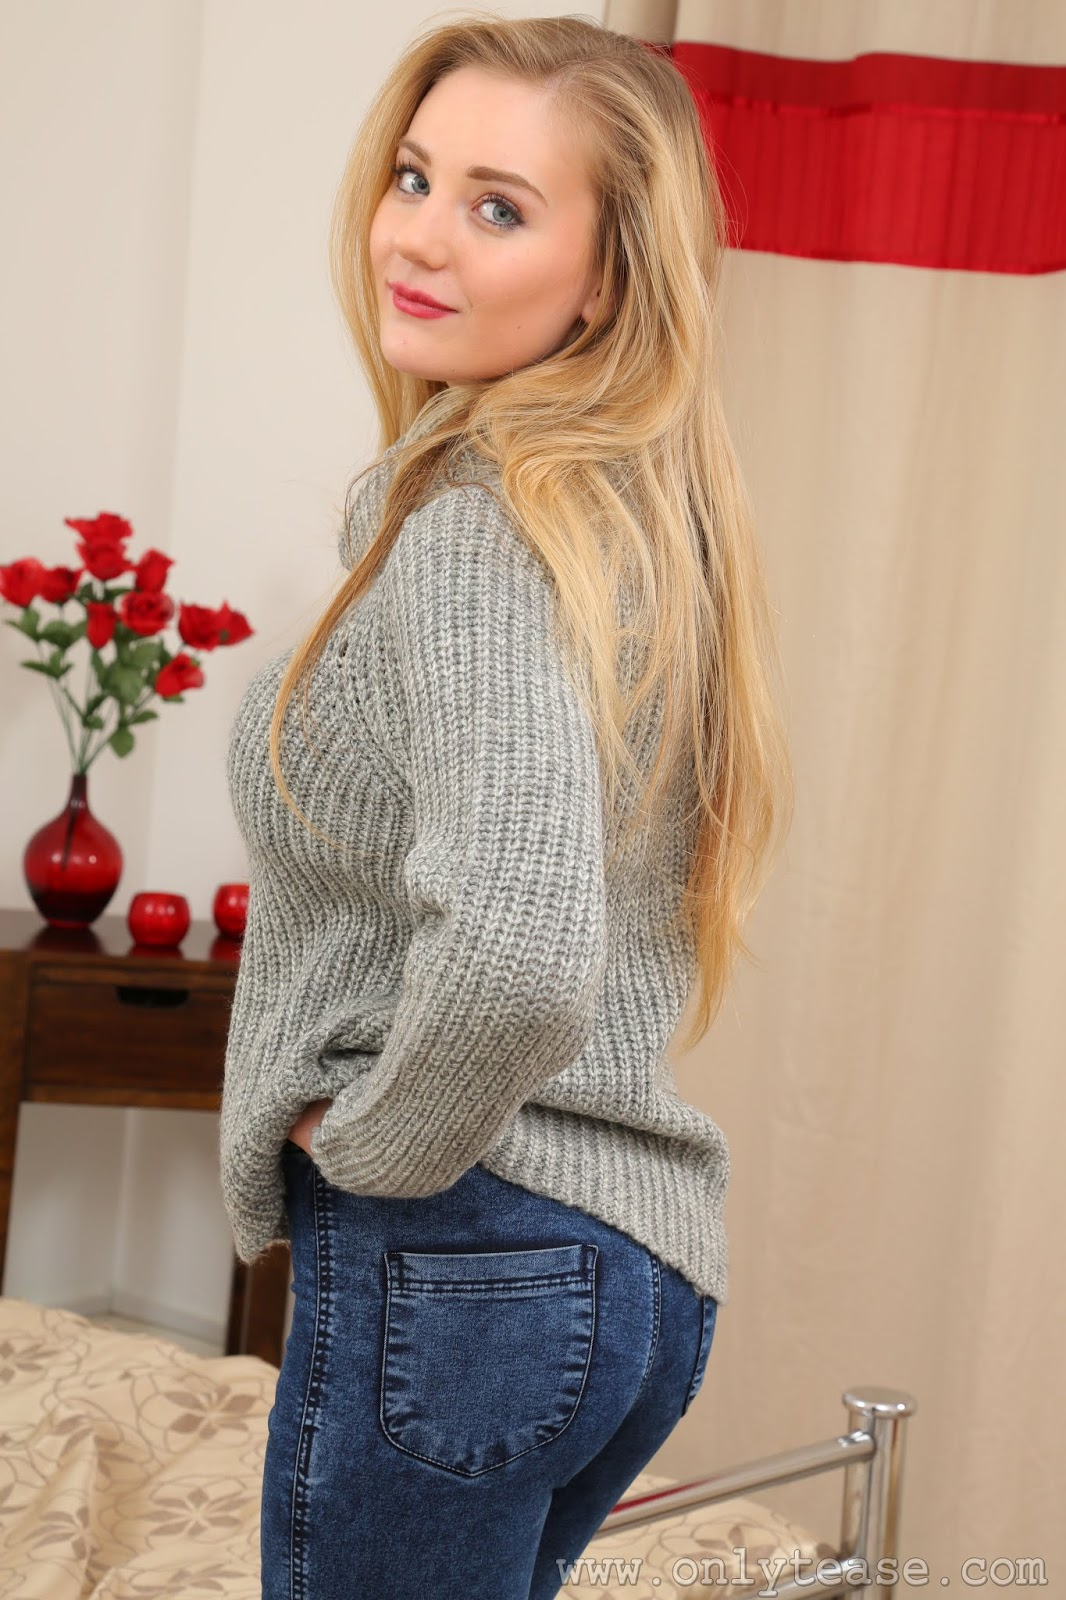 Beth Lily Onlytease photo 6